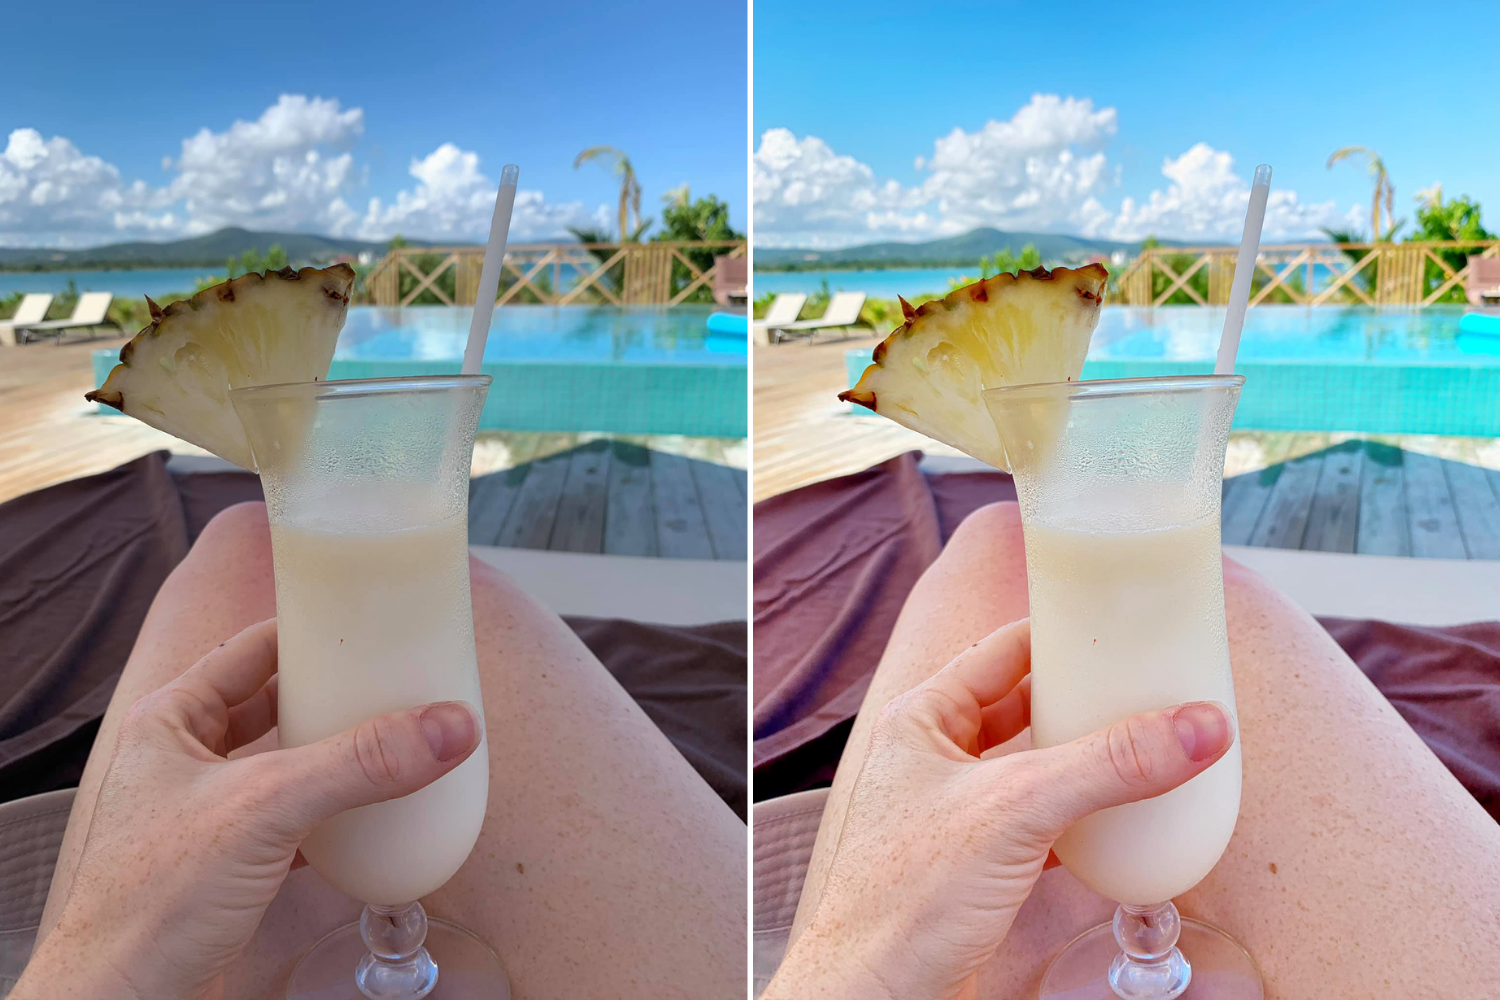 unedited and edited image of a Piña colada taken by Krystyn